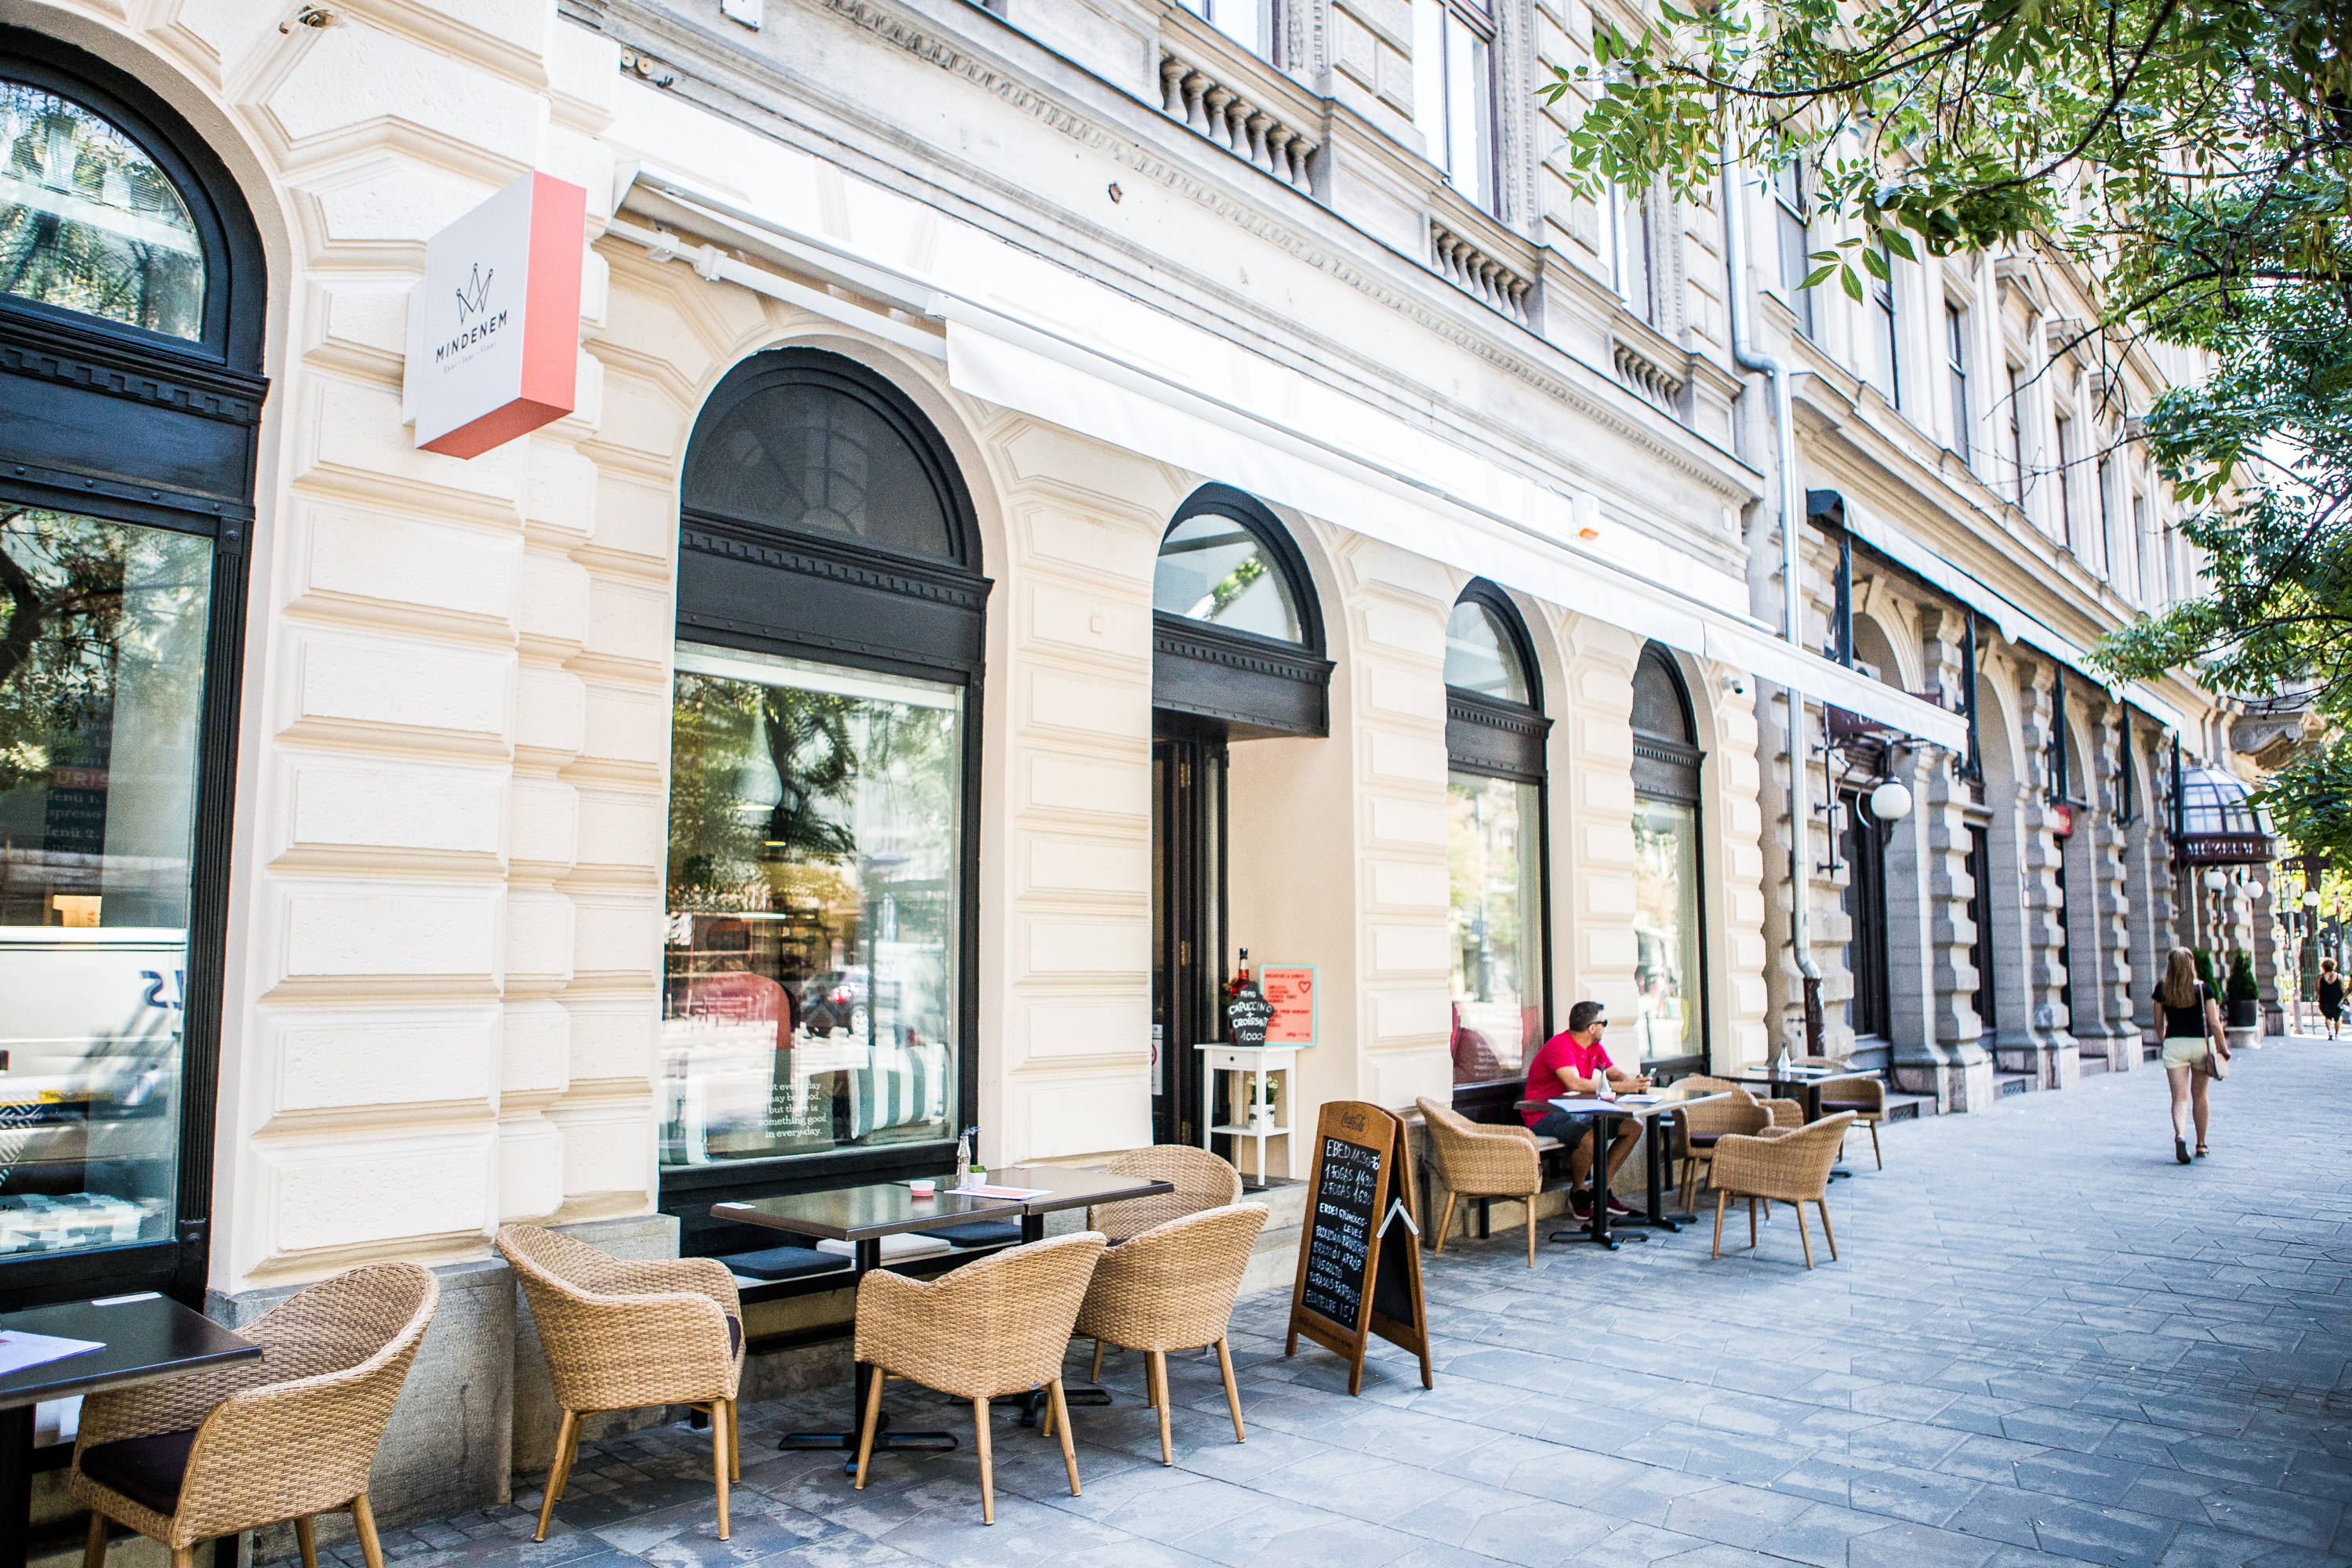 Mindenem – Budapest's new spot for breakfast, lunch and post-work drinks